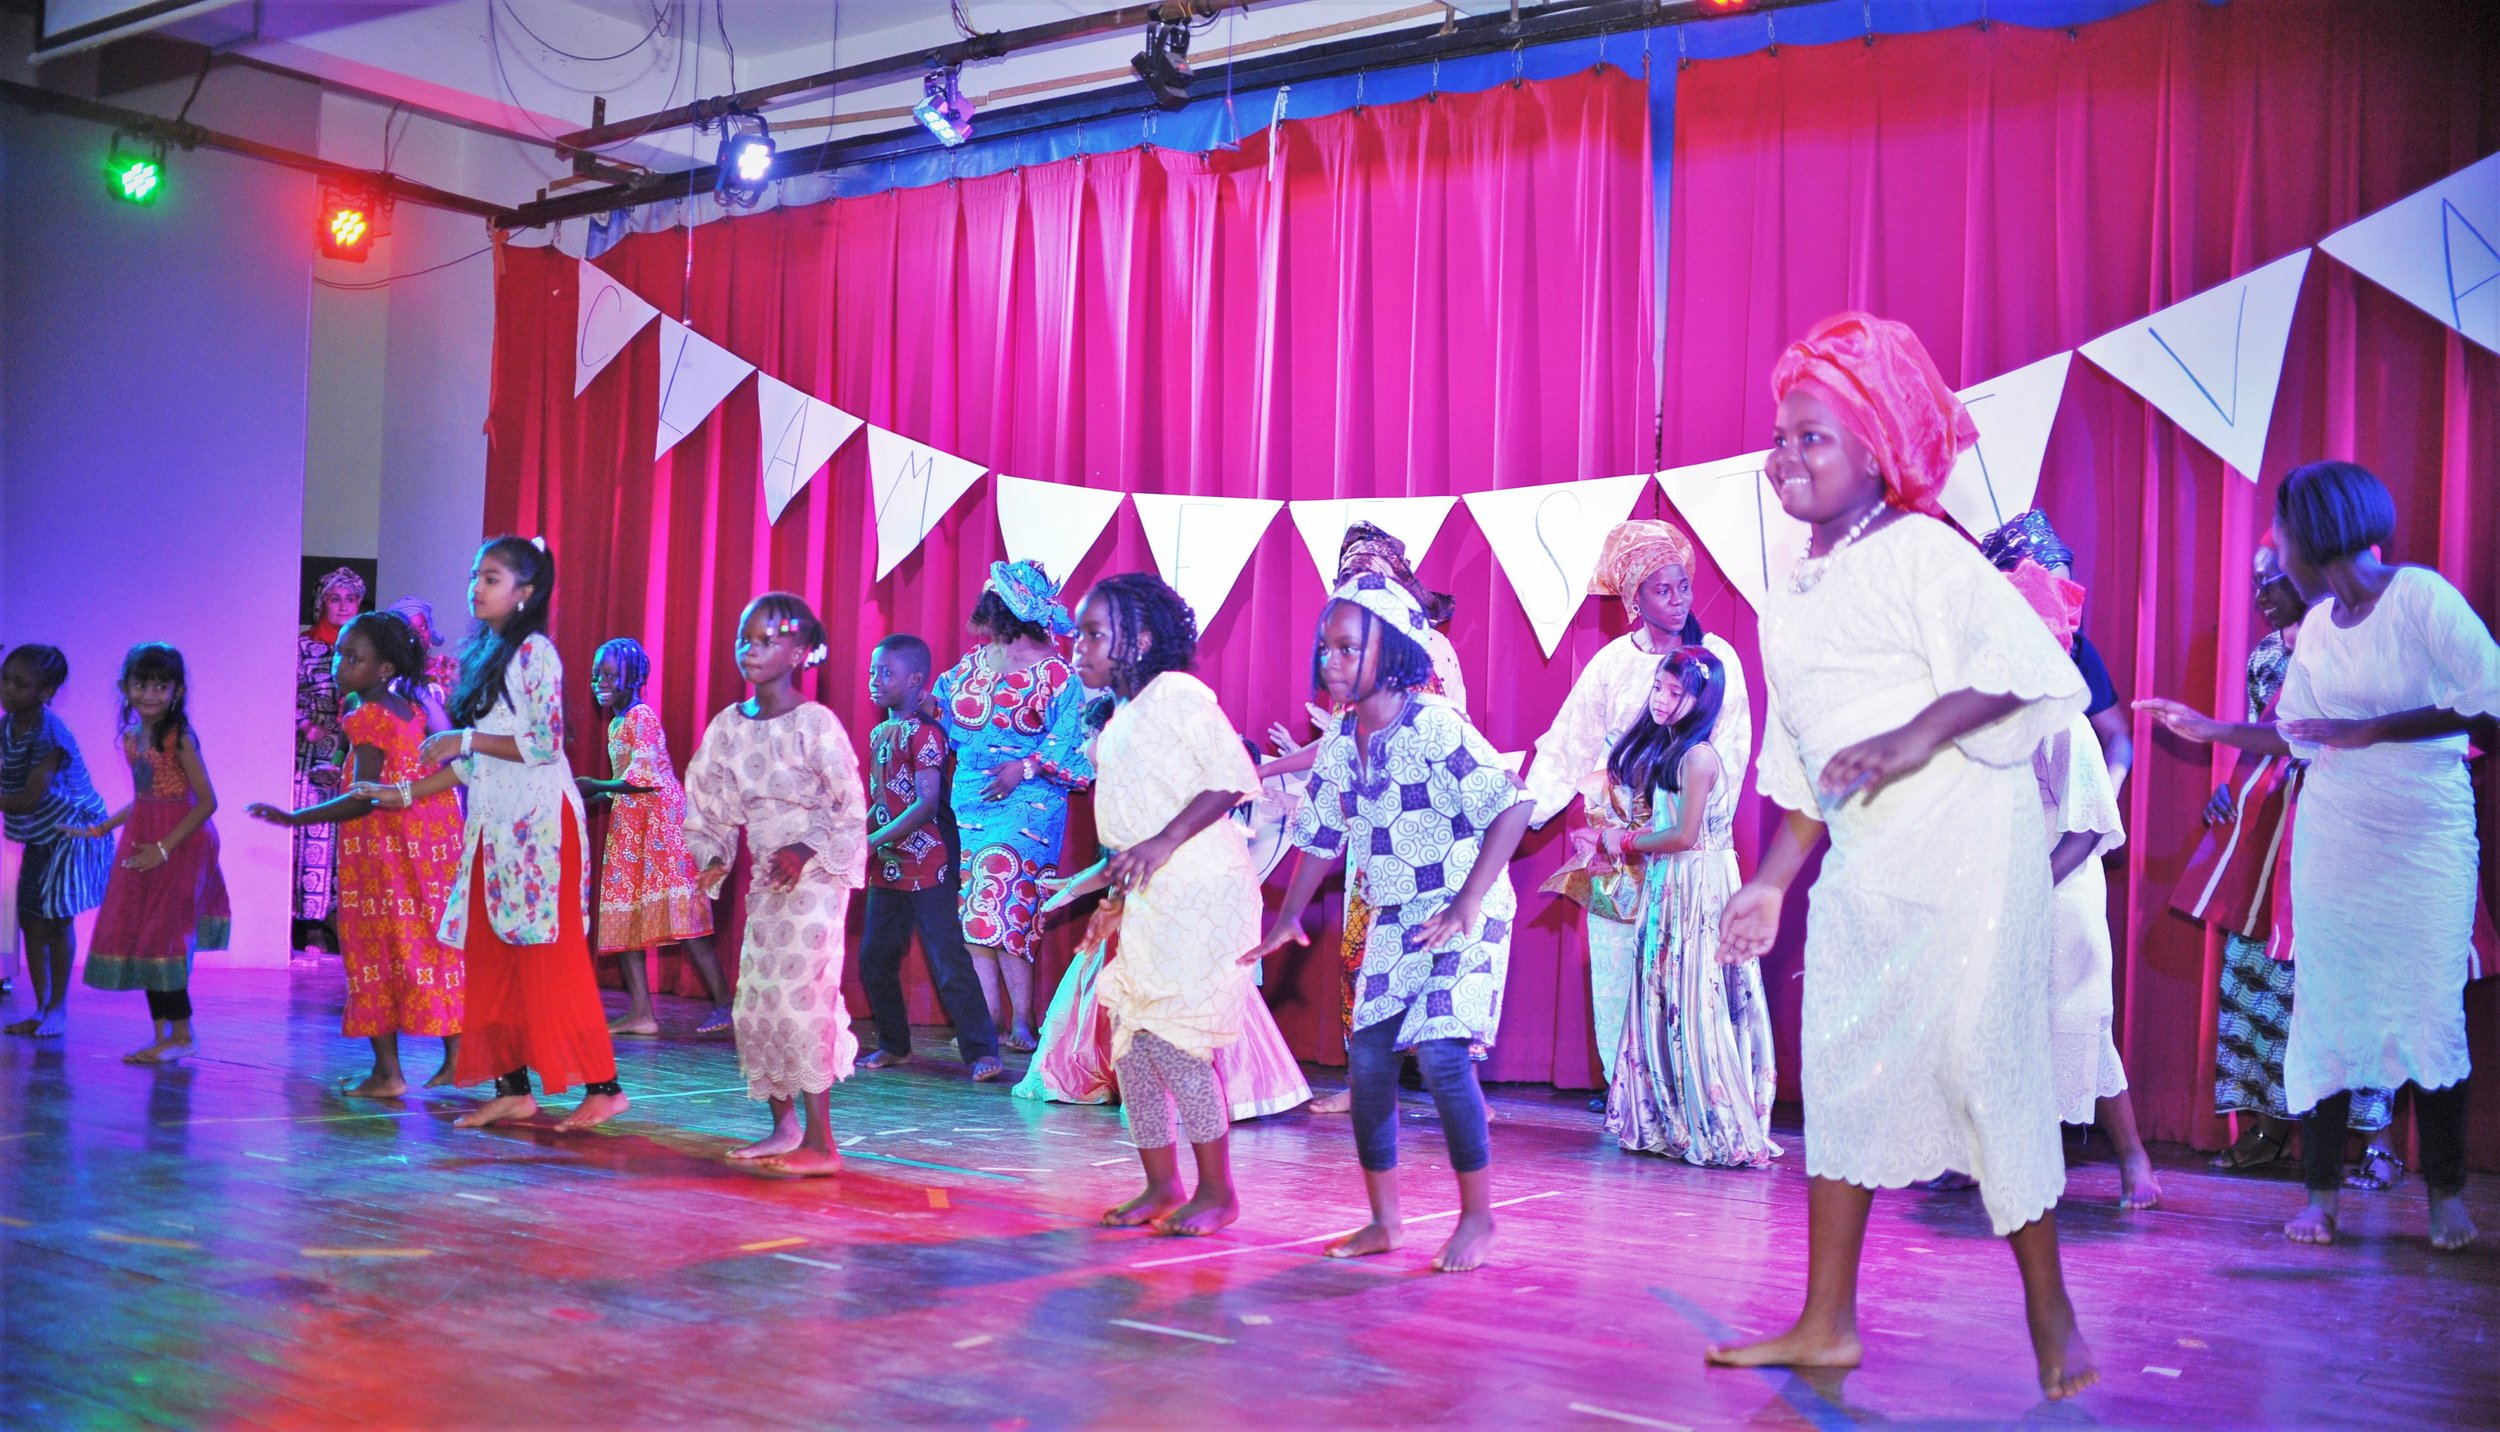 Cultural Dance club mixed it up with Yoruba and Indian dances for all to learn and enjoy!